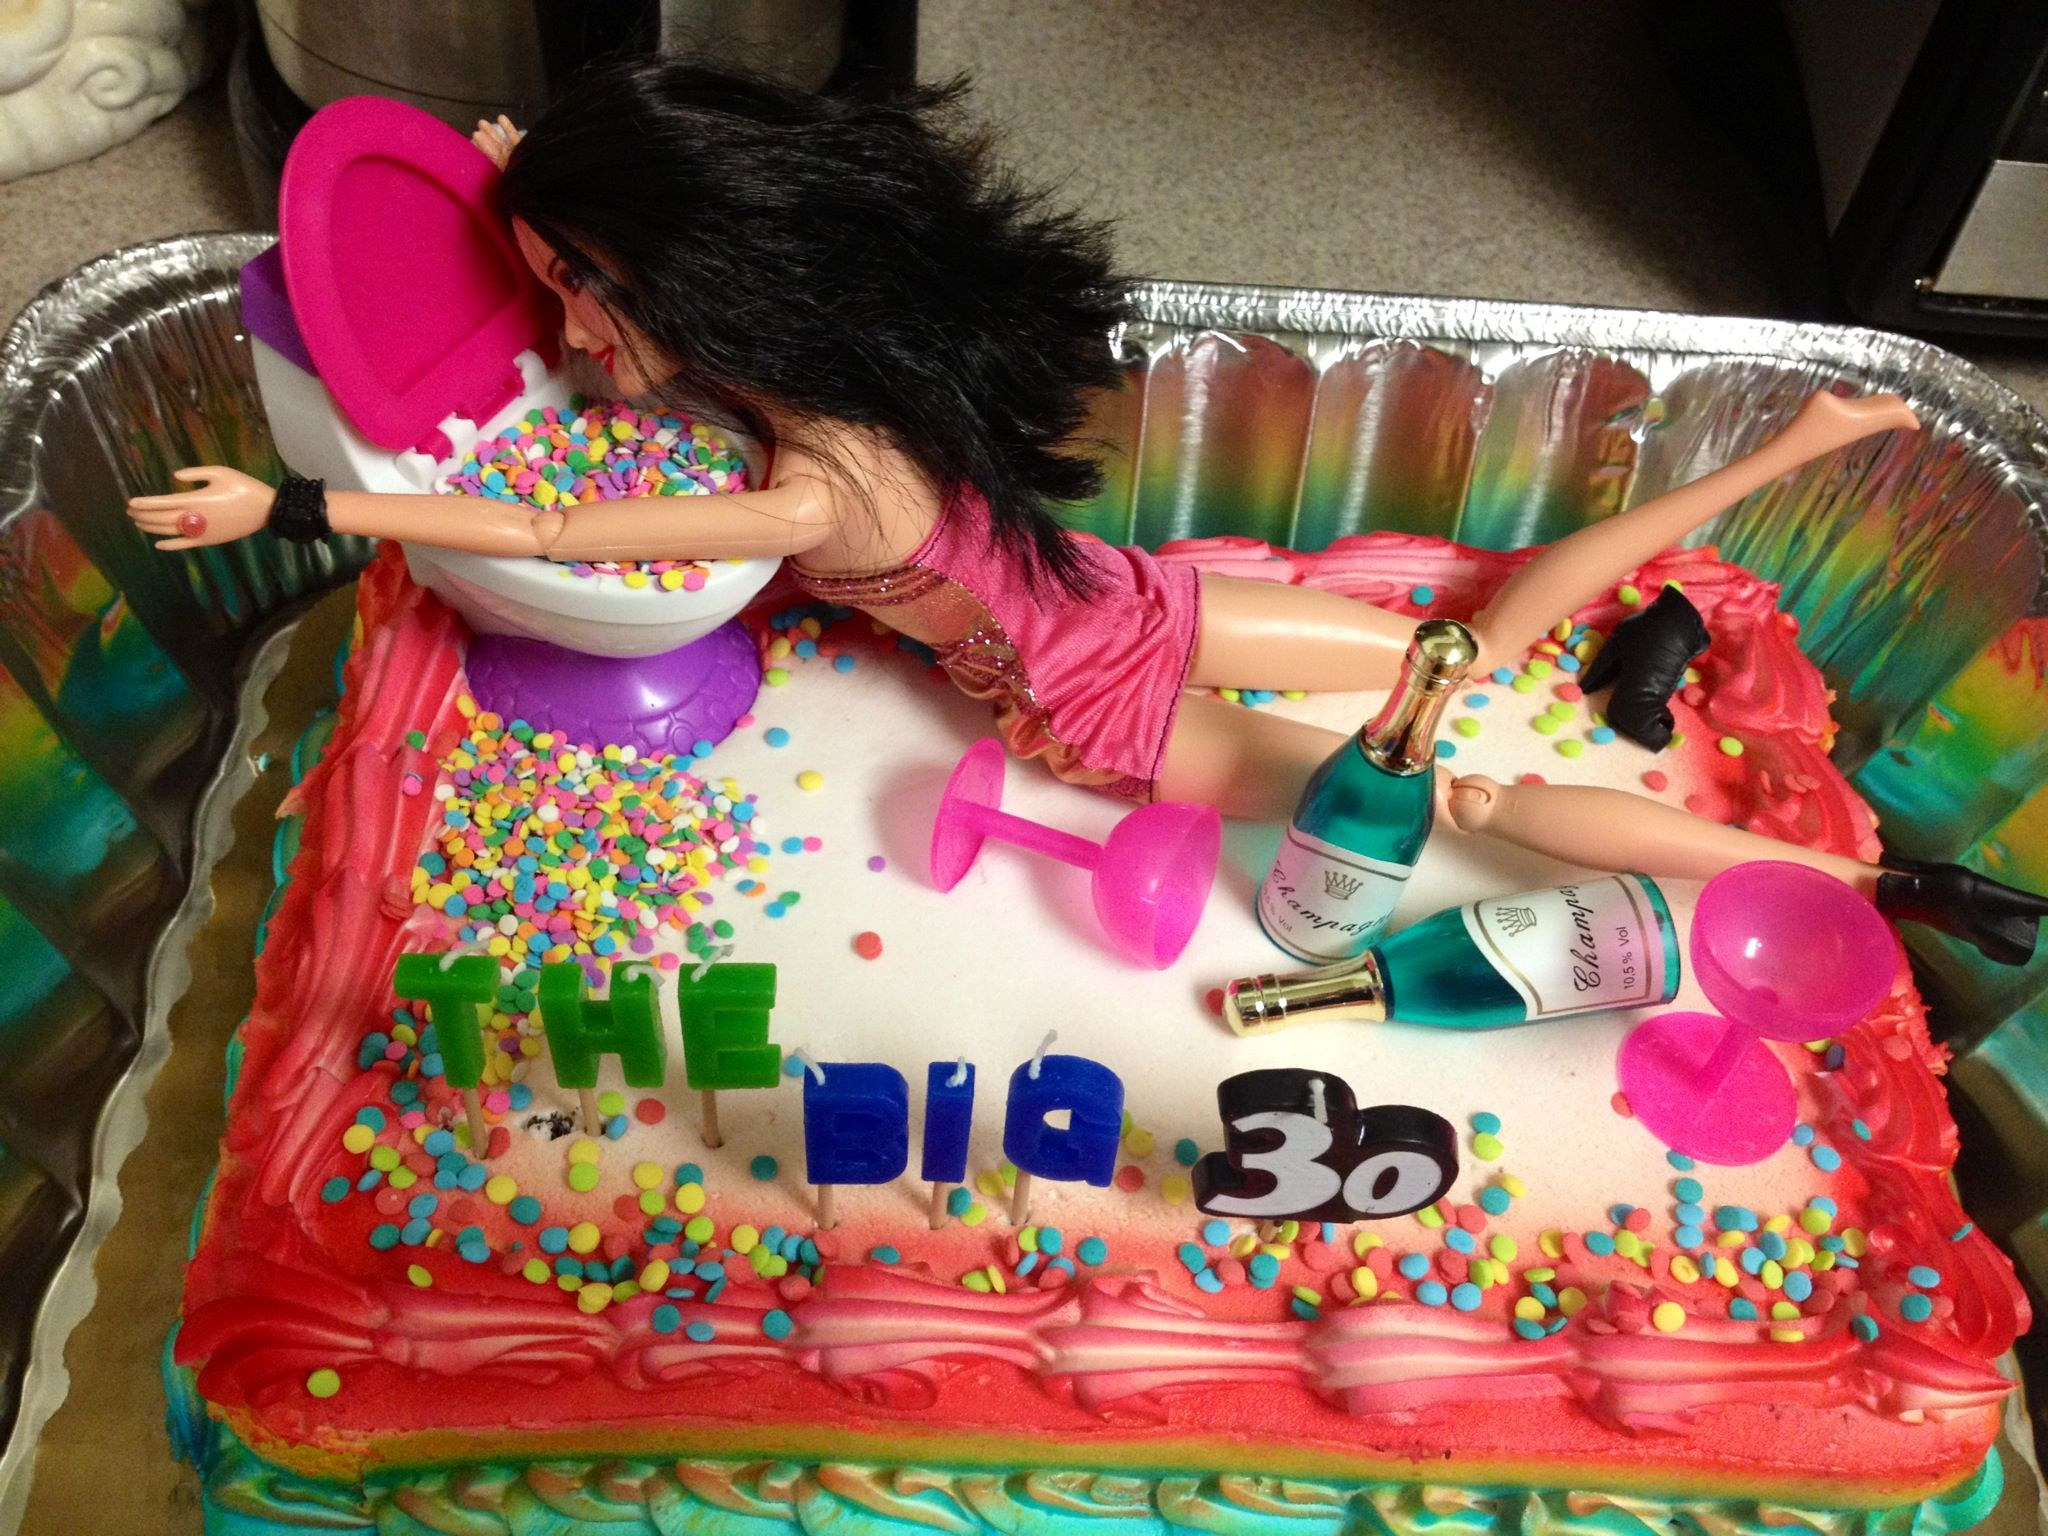 Drunk Barbie Cake Images : Drunk Barbie Cake on Pinterest 21 Birthday Cakes, 21st ...